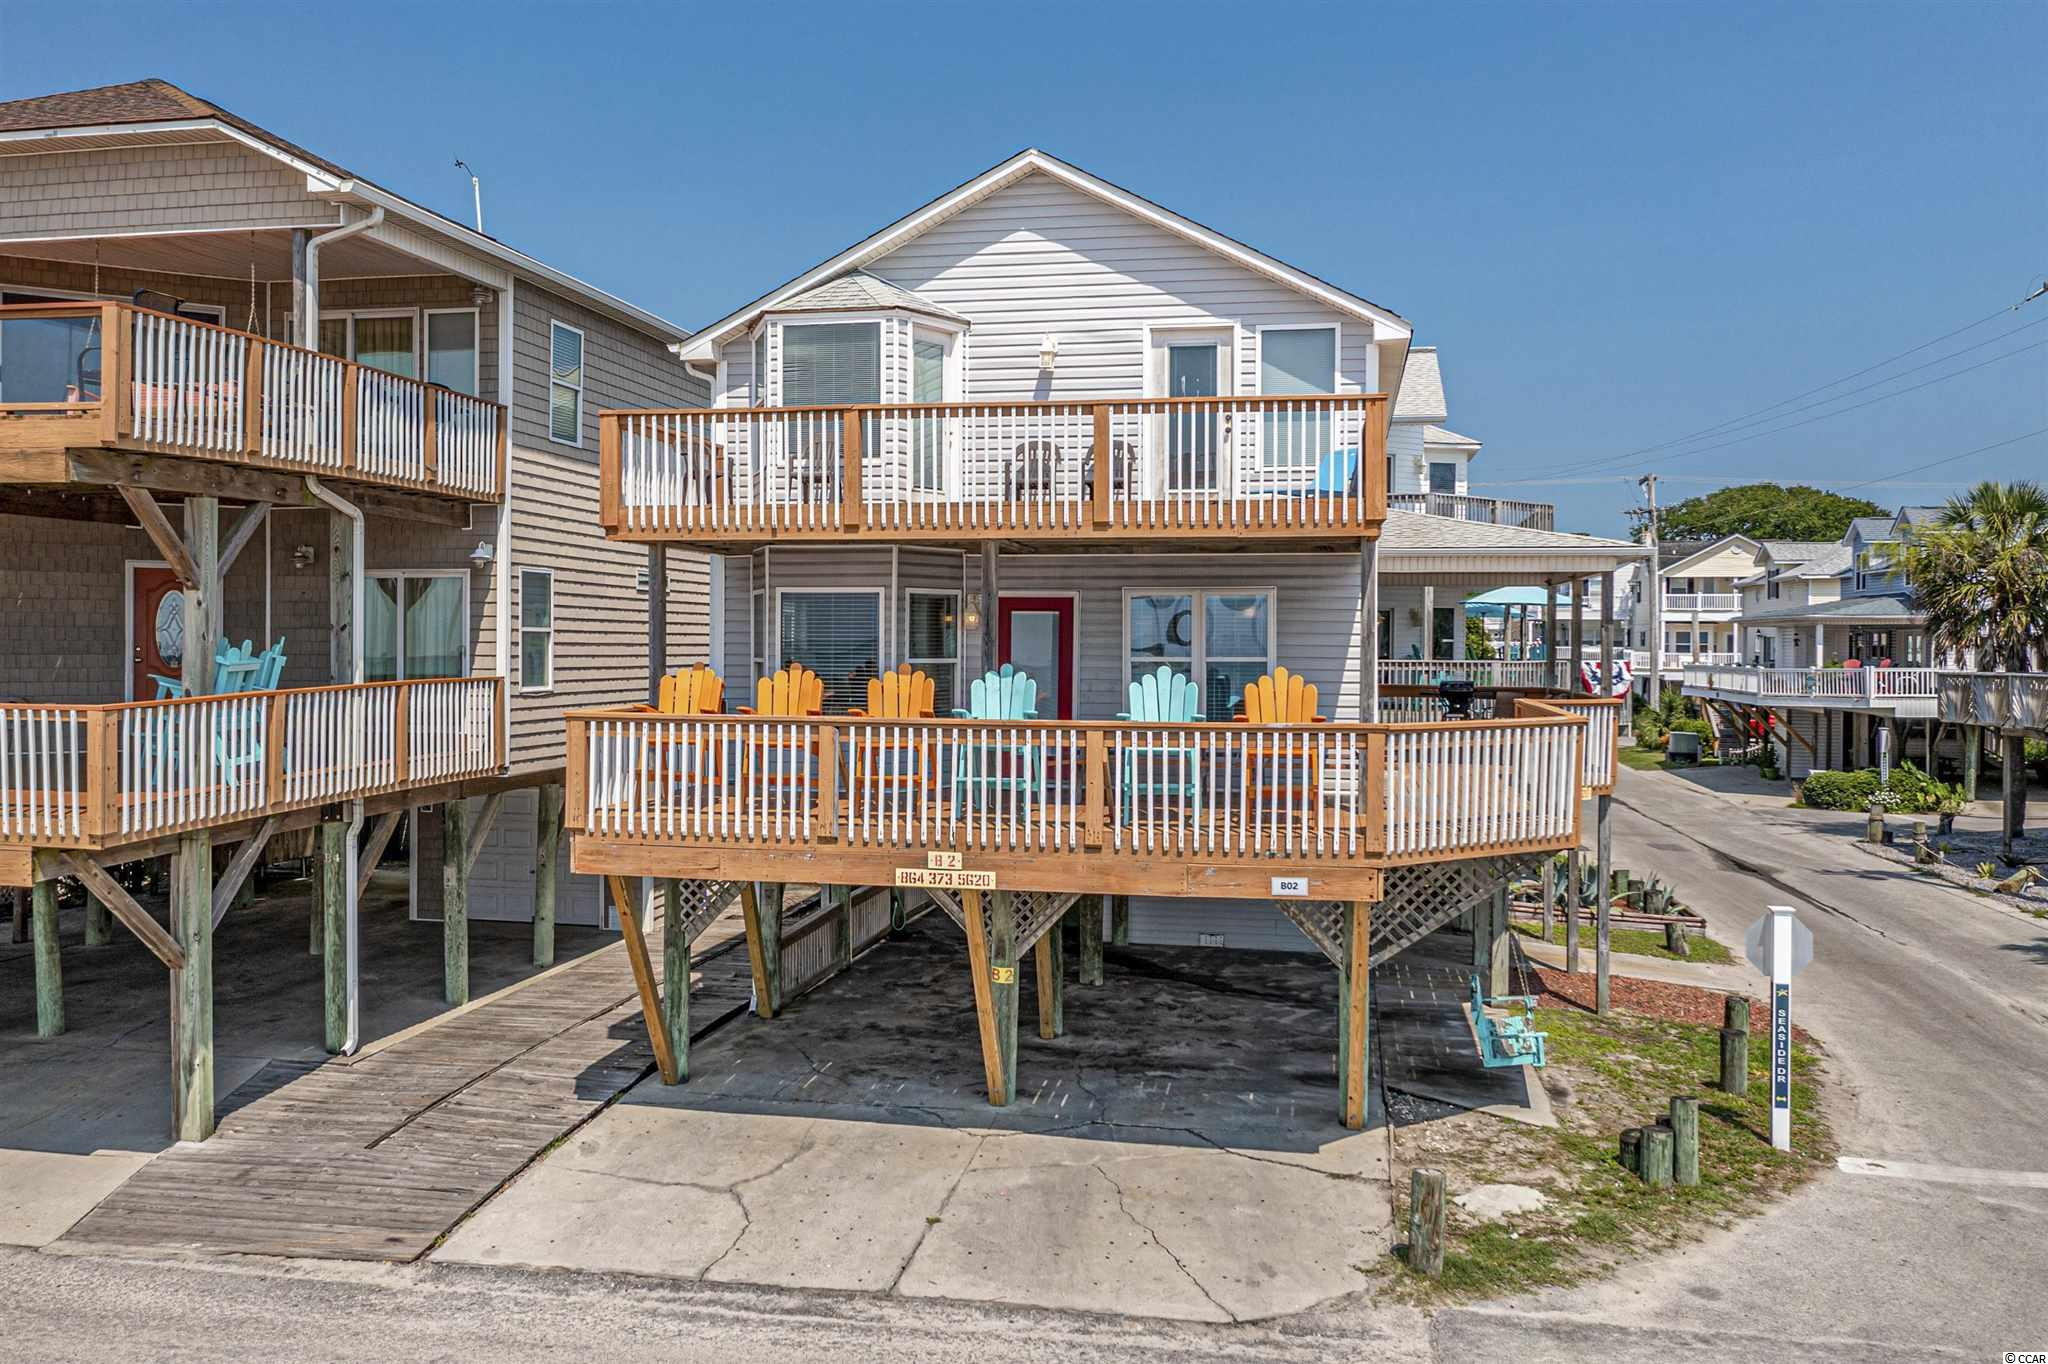 Ocean Front, Corner Lot. Amazing view from all the decks. Home comes with everything in pictures. All sites are close to the beach and most amenities that Ocean Lakes has to offer come with the purchase. Ocean Lakes has nearly a mile of beach front. 24 hour security and amenities such as indoor and outdoor pools, waterpark with a splash zone, golf cart rental, sales, and service, lazy river, slides, basketball courts, volleyball, mini-golf, and much more when you become part of the Ocean Lakes Family